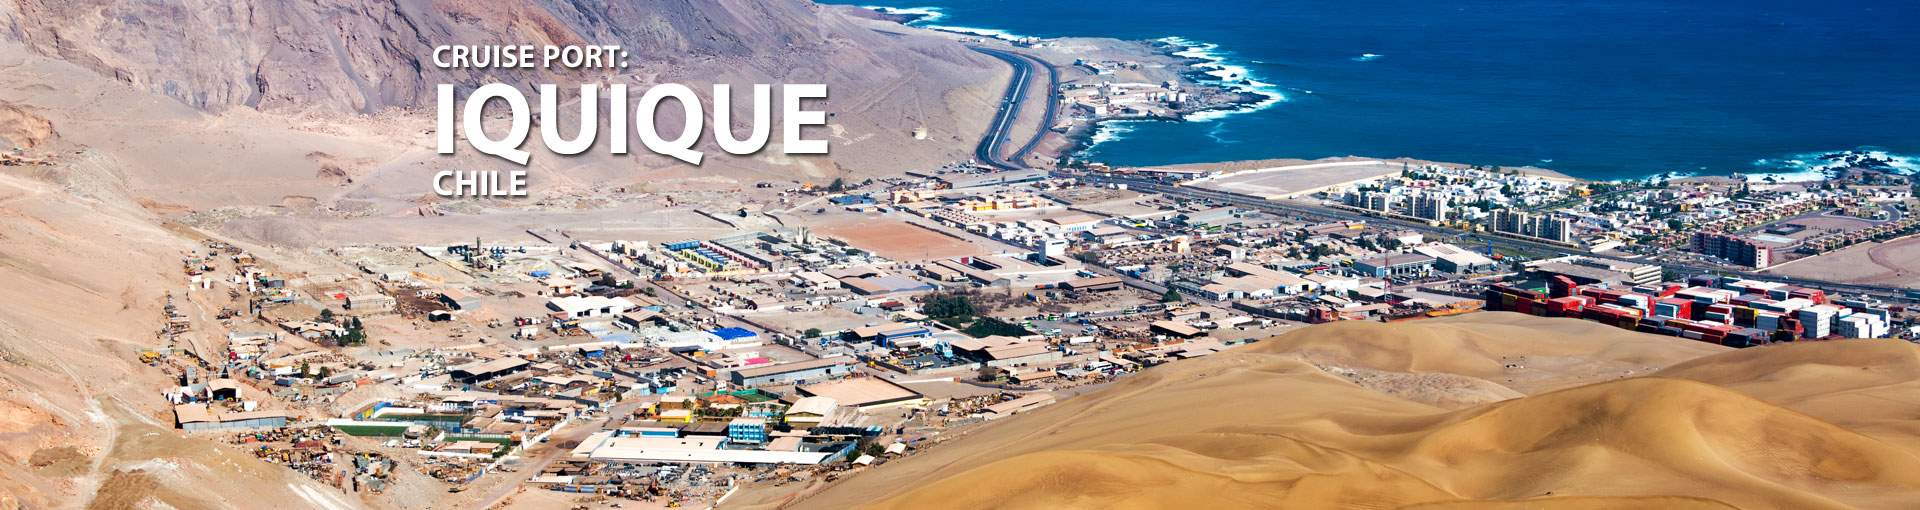 Cruises to Iquique, Chile